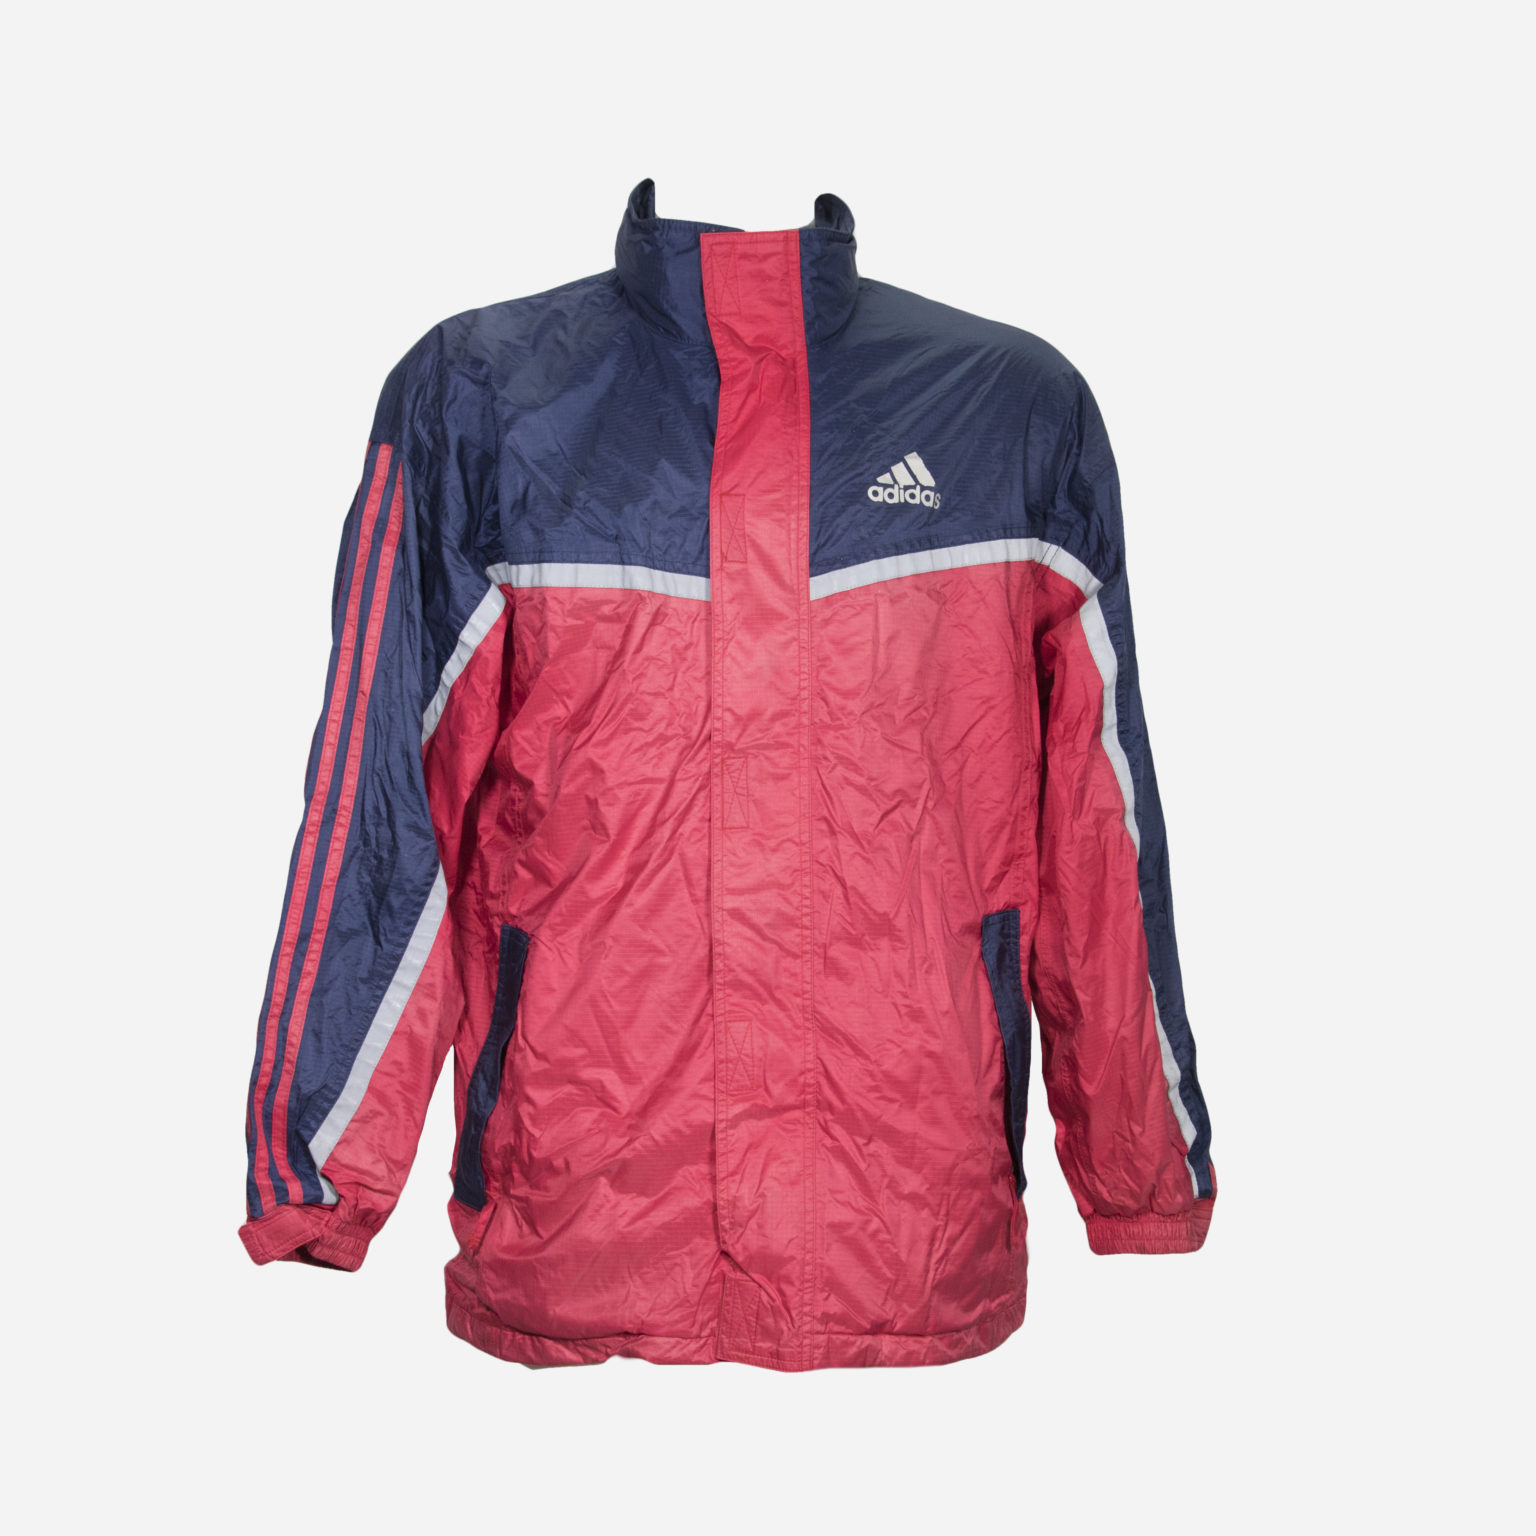 Kway-firmati-uomo-Branded-k-way-for-man_NORMAL_12426